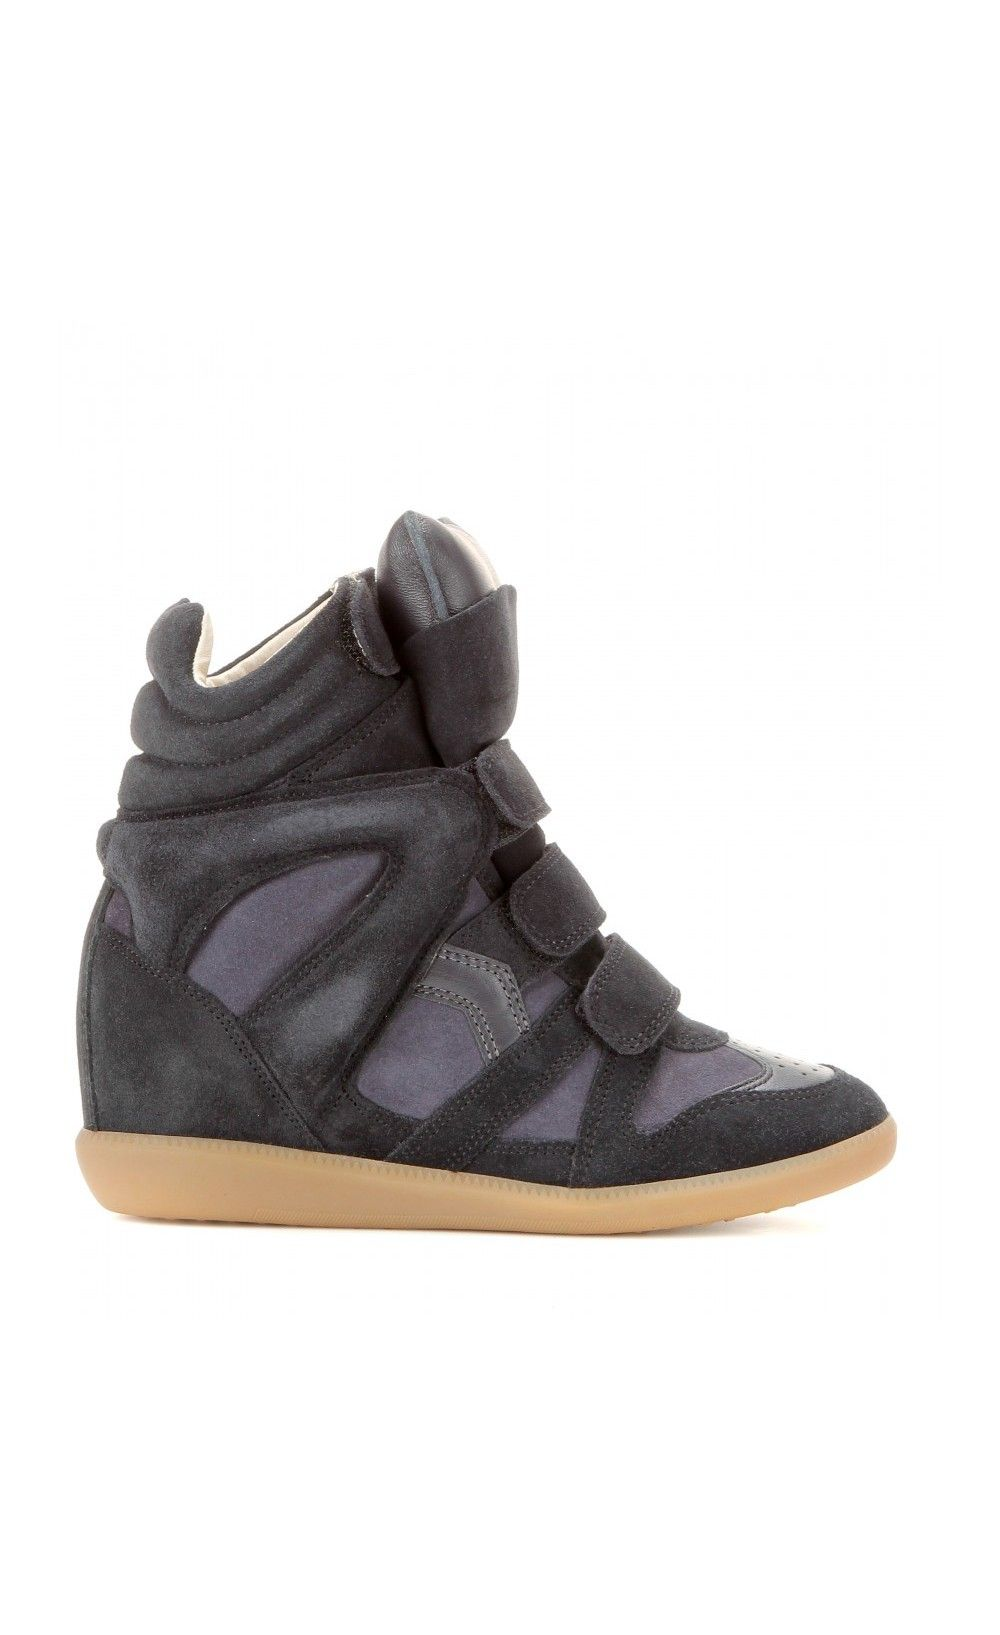 Isabel Marant Bekett Leather And Suede Sneakers Anthracite